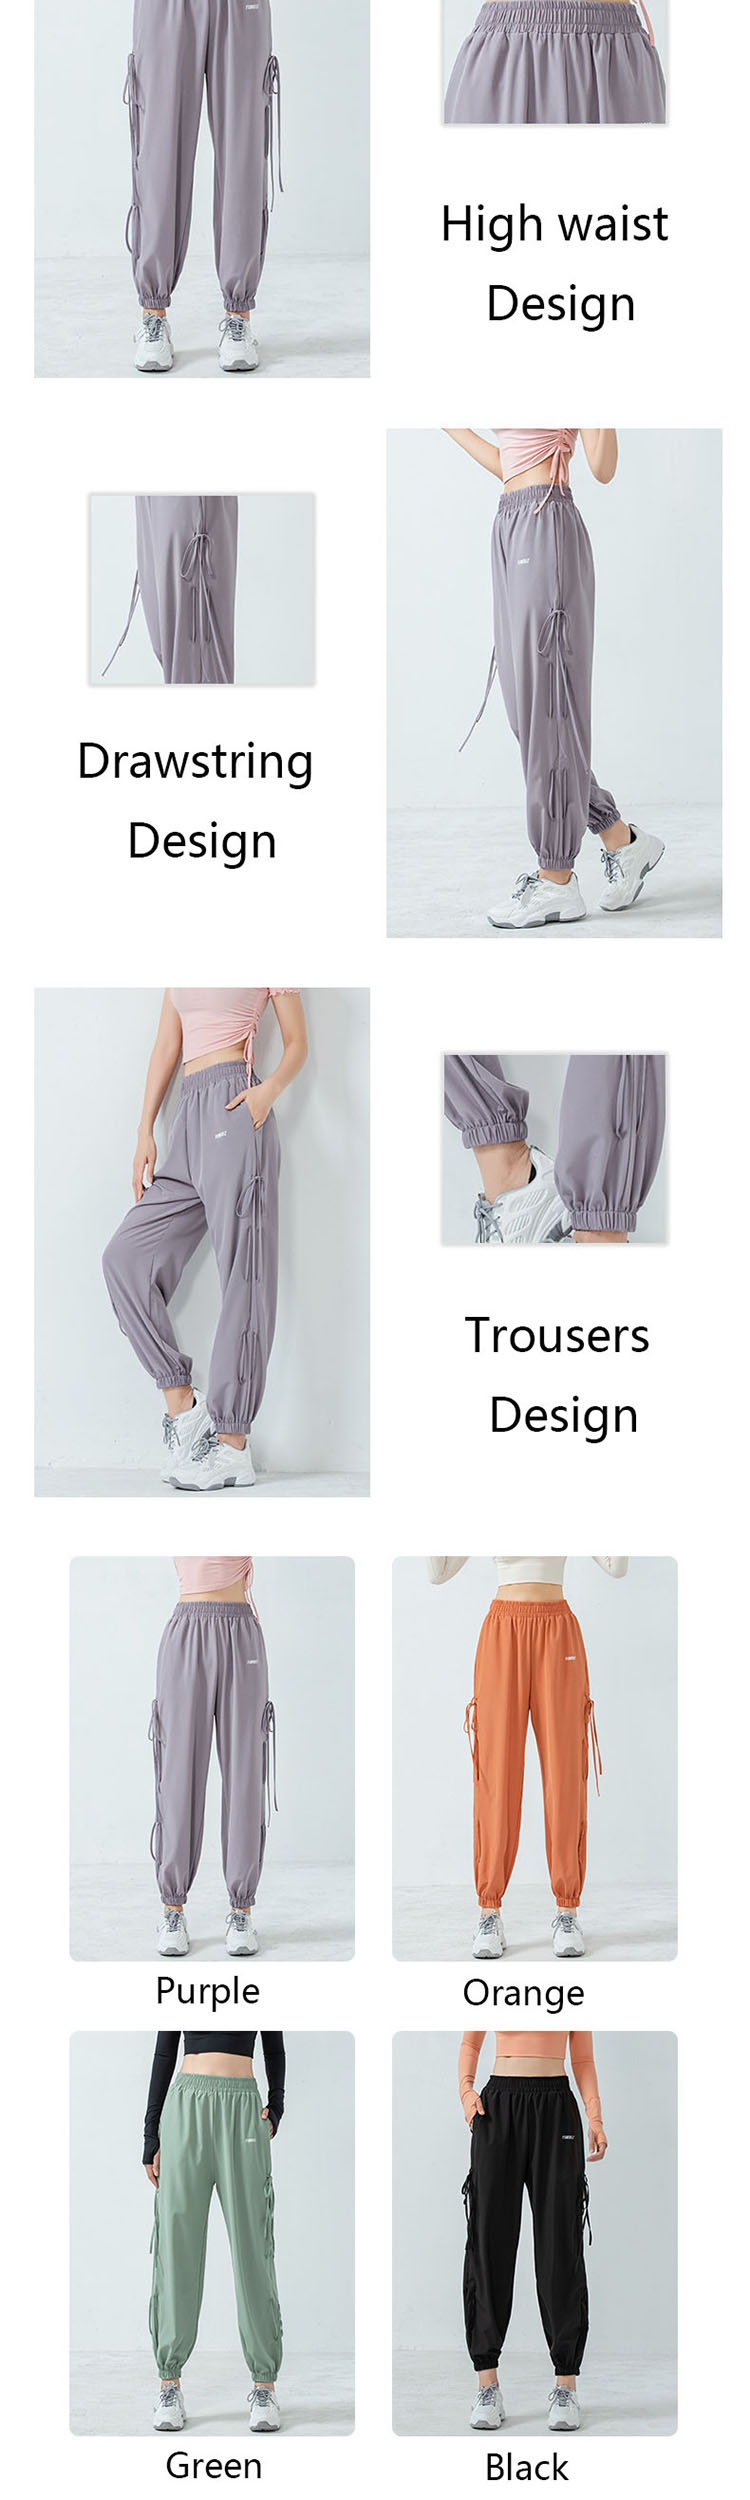 Flare yoga pants are trousers that are elegant, simple and casual